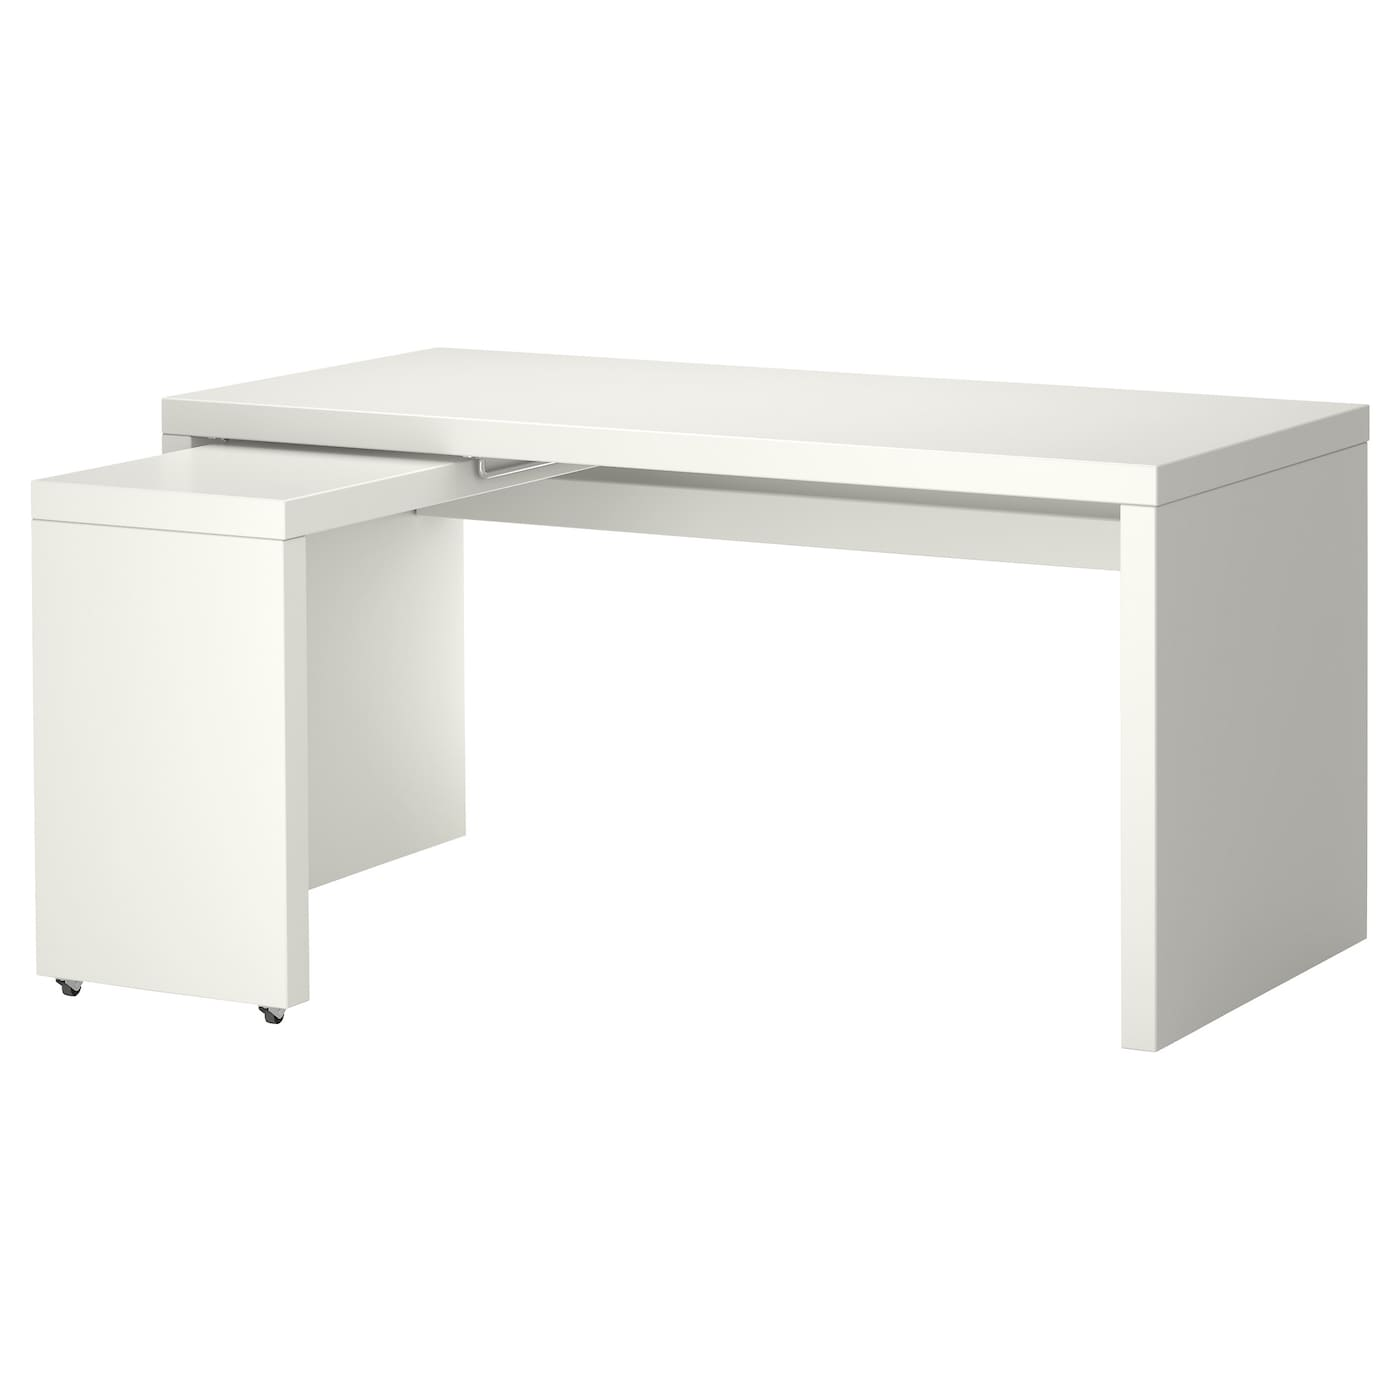 malm desk with pull out panel white 151x65 cm ikea. Black Bedroom Furniture Sets. Home Design Ideas